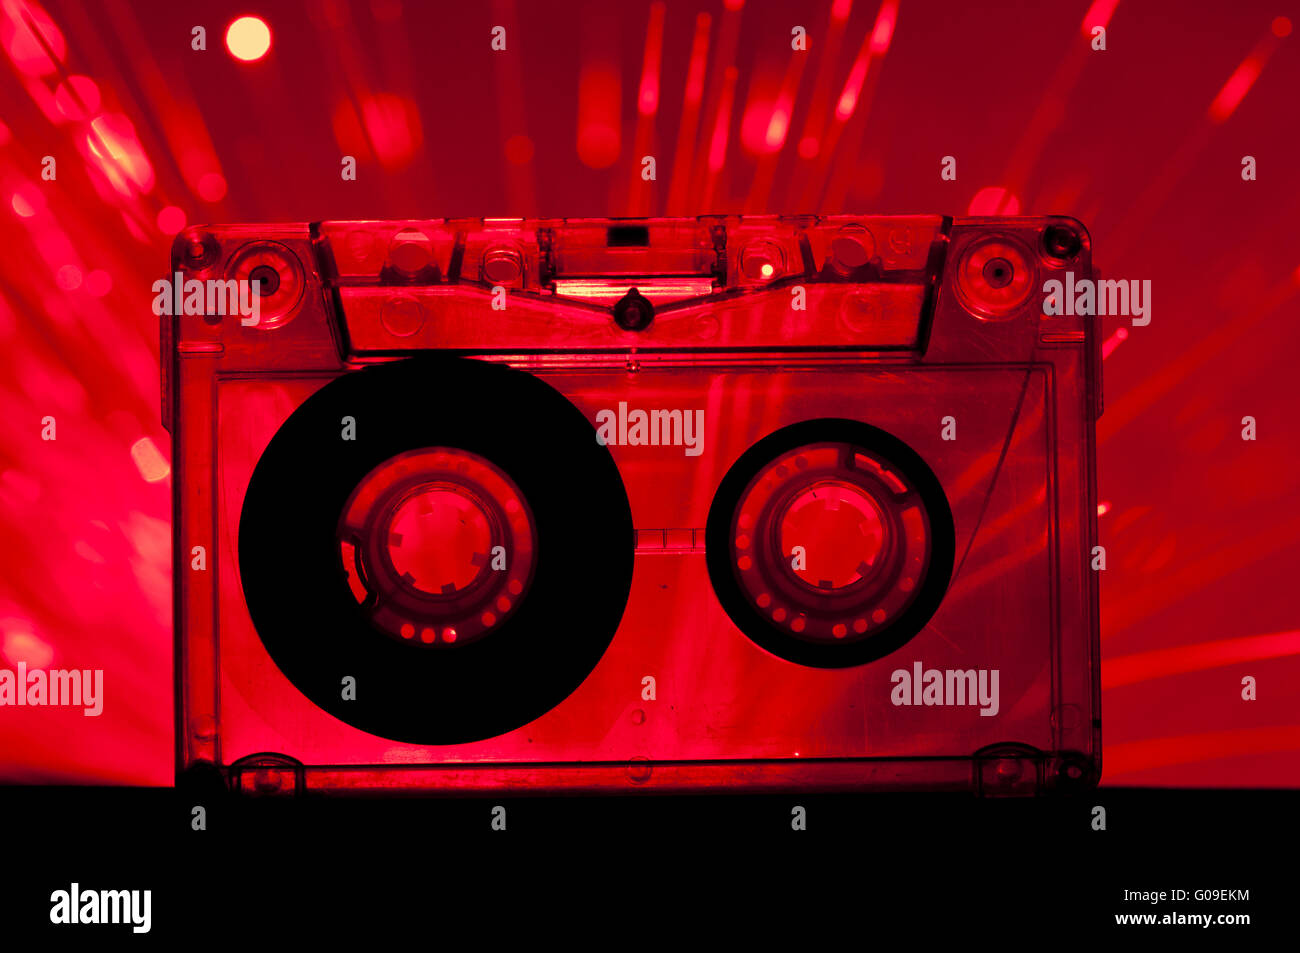 Transparent Cassette tape disco lights background - Stock Image